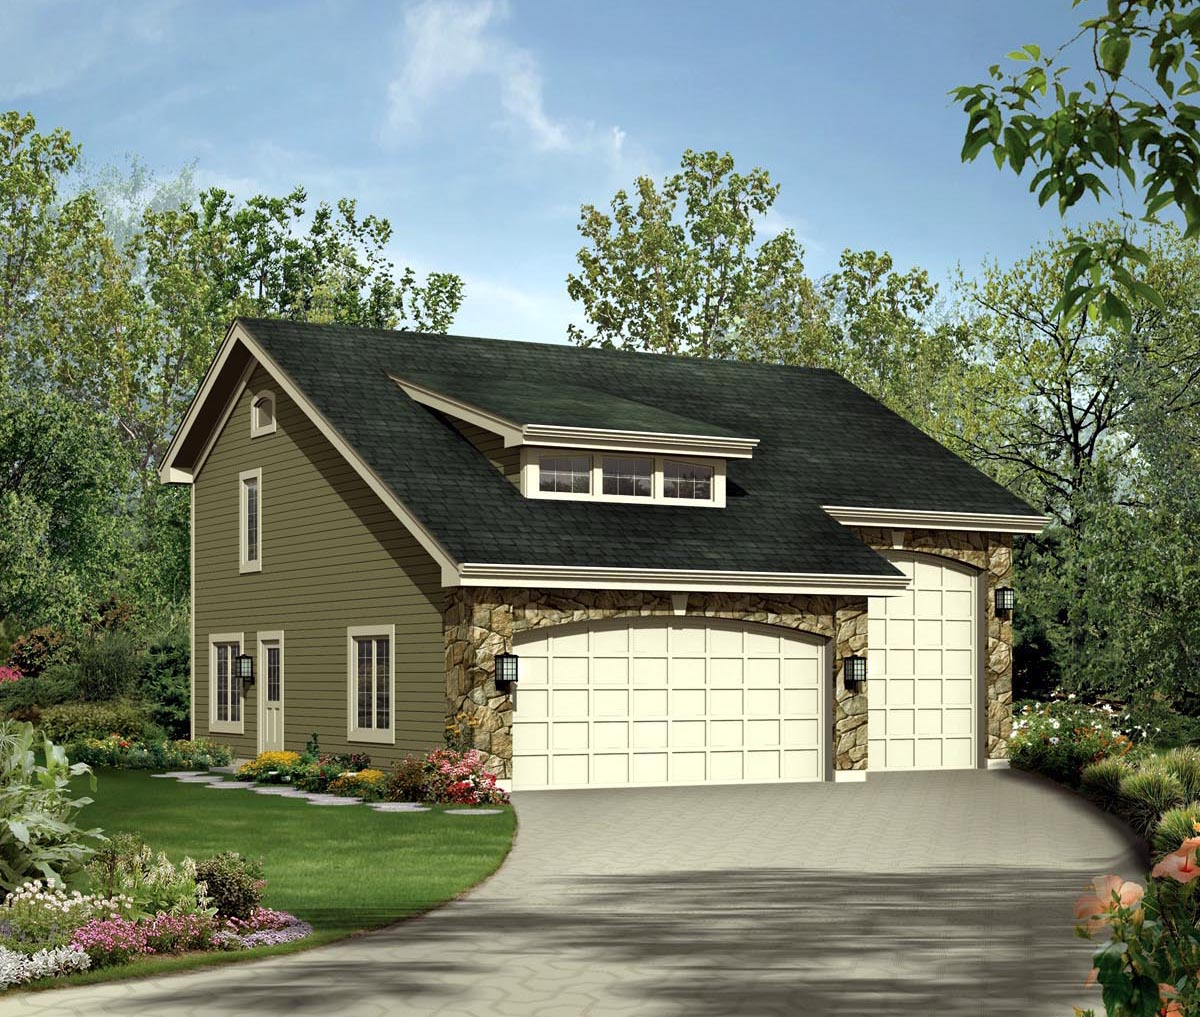 Garage Plan 95827 at FamilyHomePlans.com